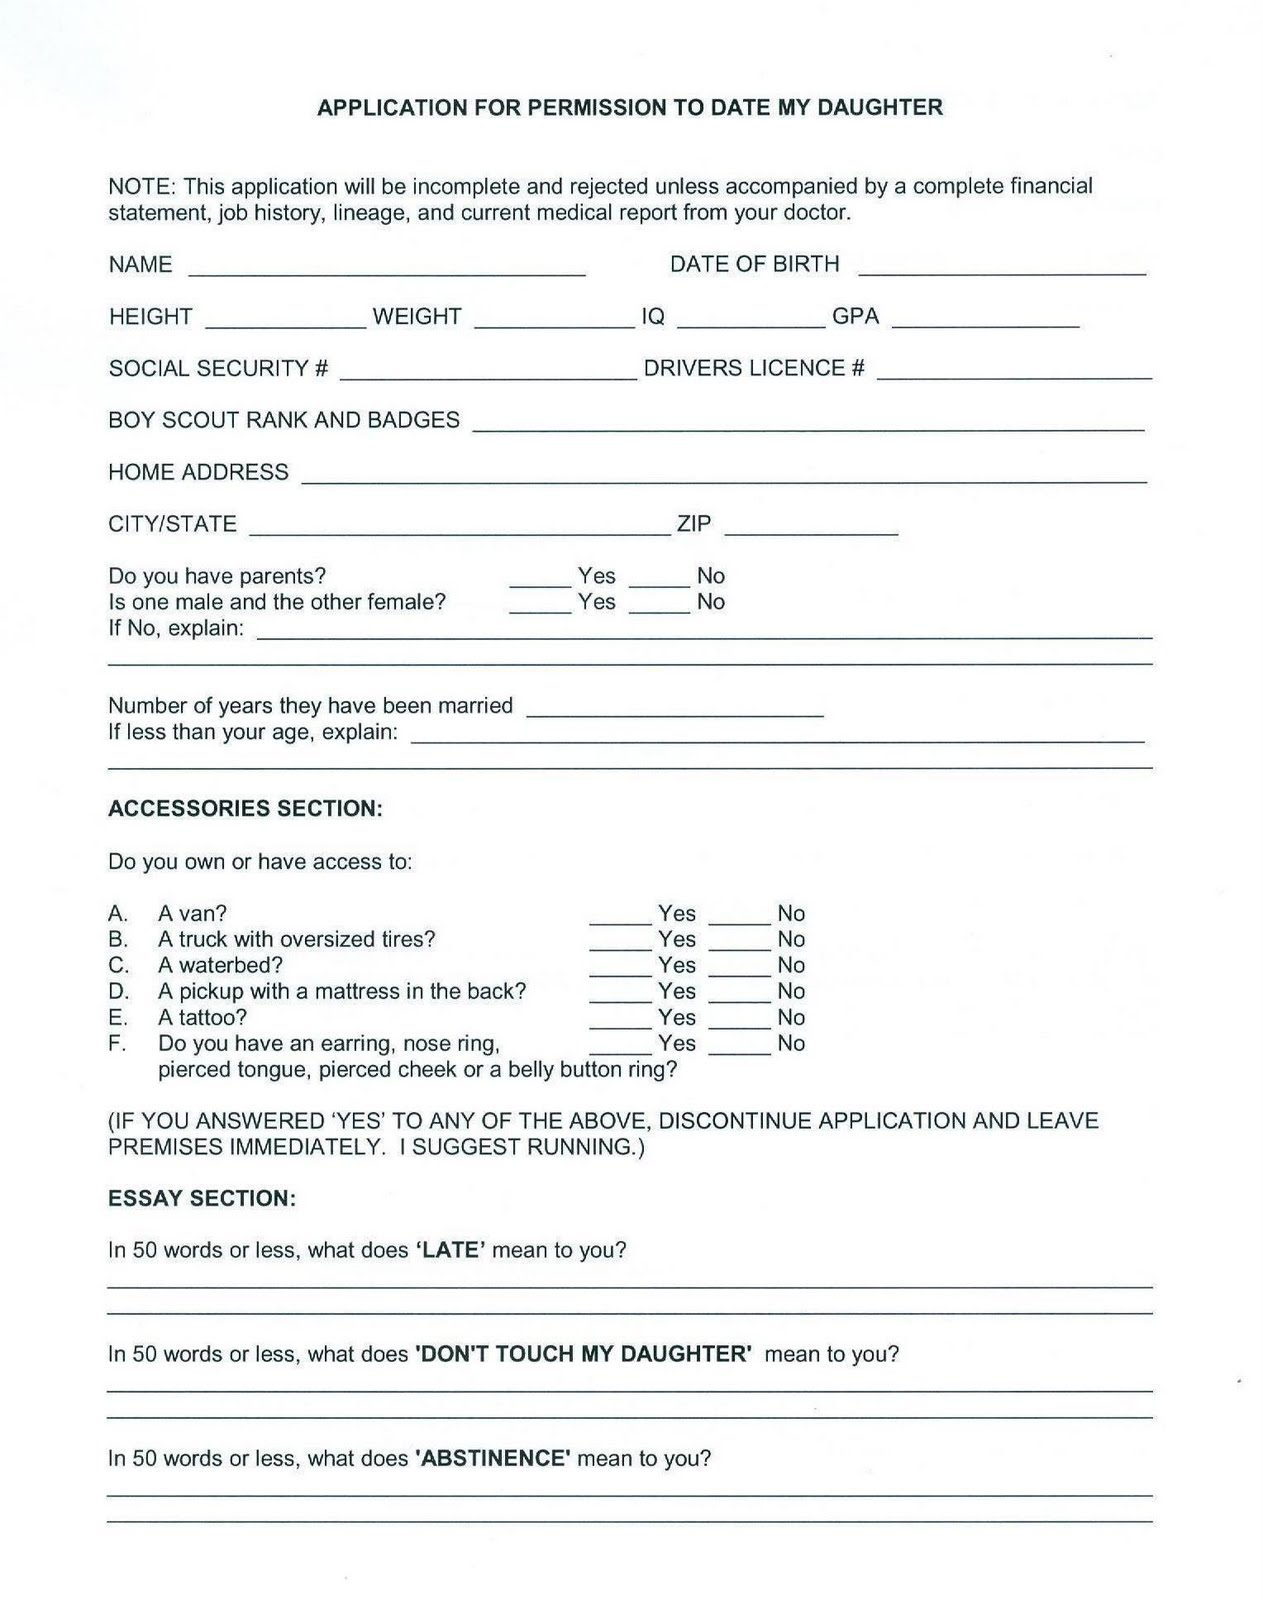 Sugar daddy application form